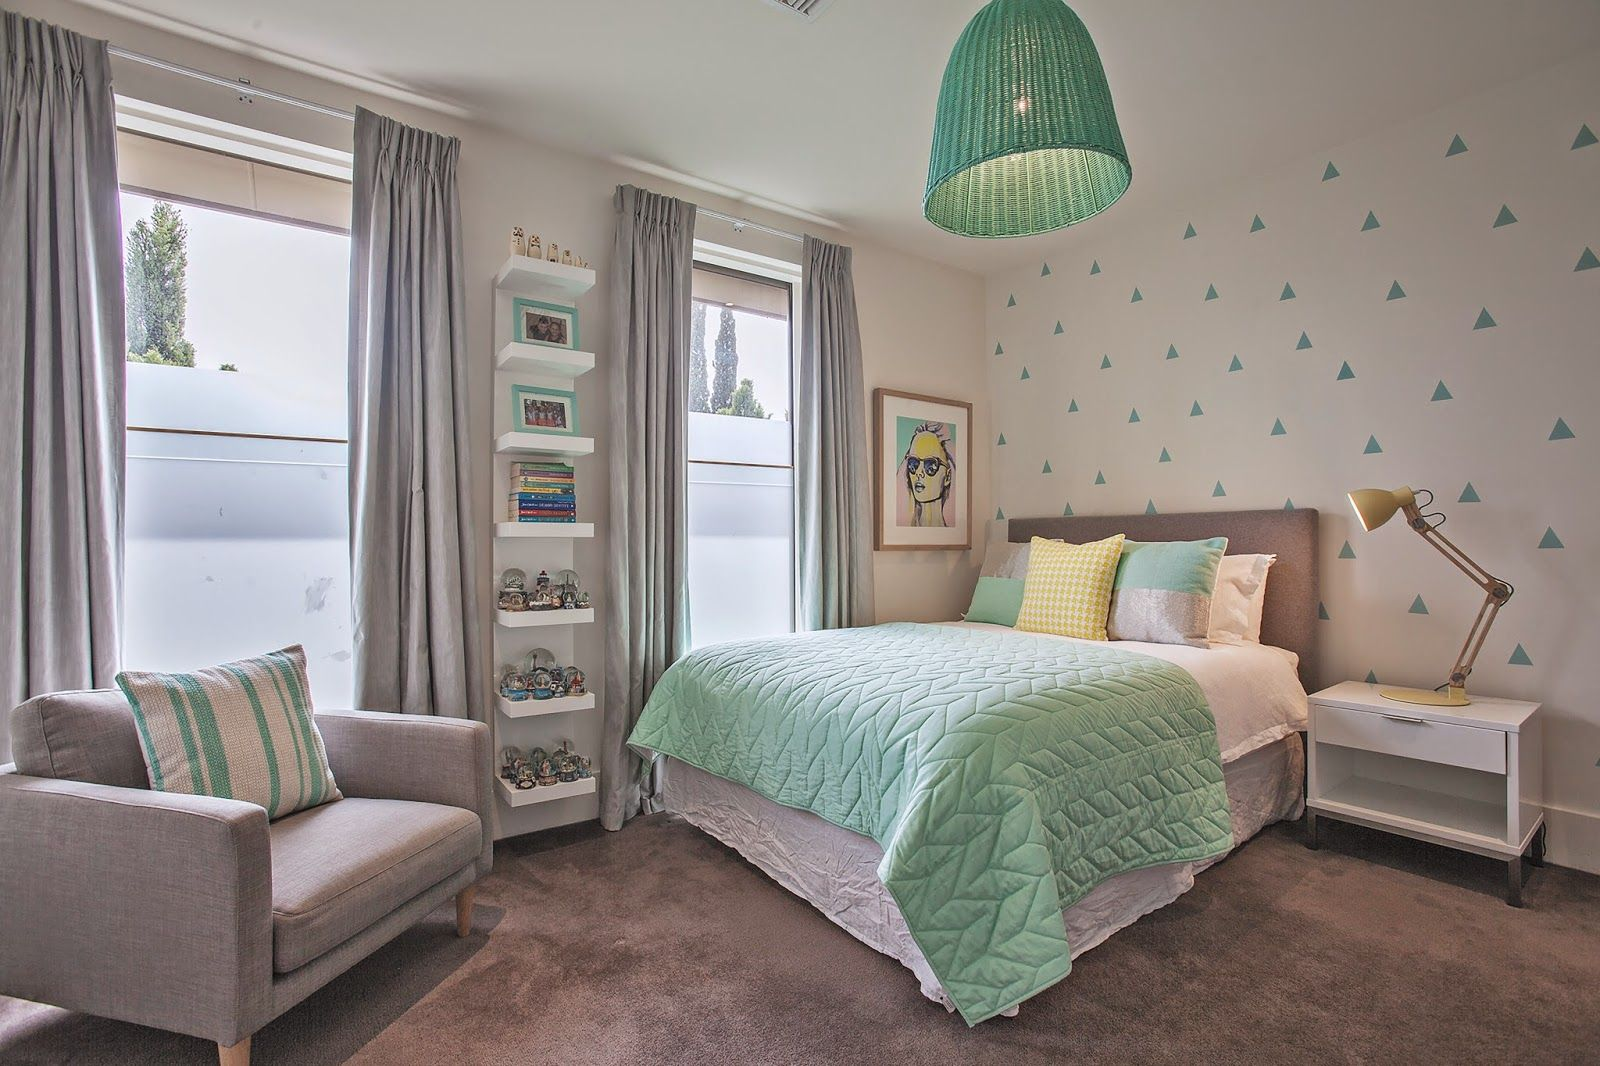 marvelous 10 year old bedroom ideas | Fresh Mint - Loved completing this beautifully minty tween ...